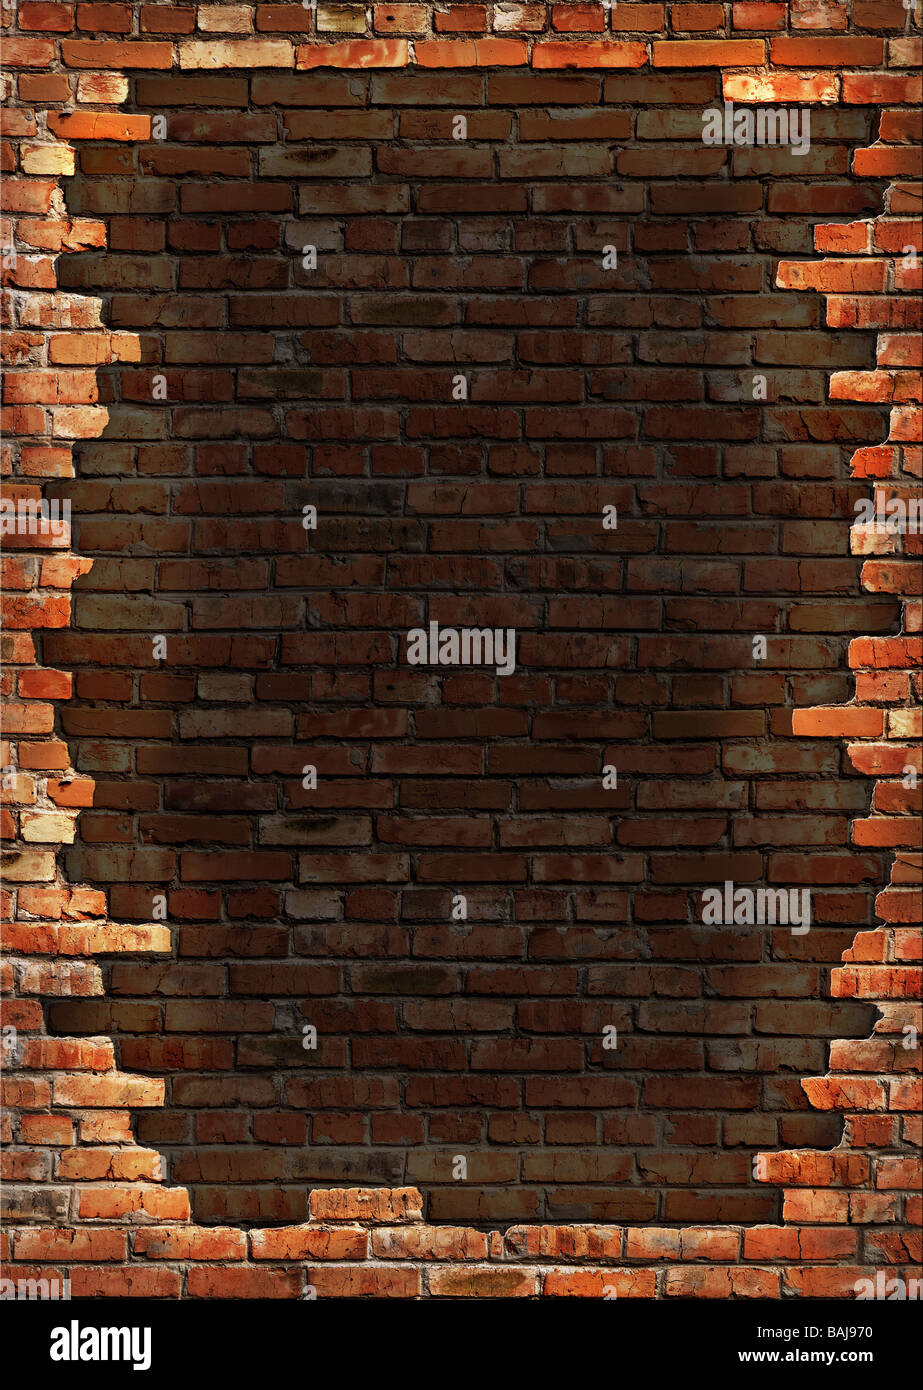 Dark red brick wall grungy background - Stock Image